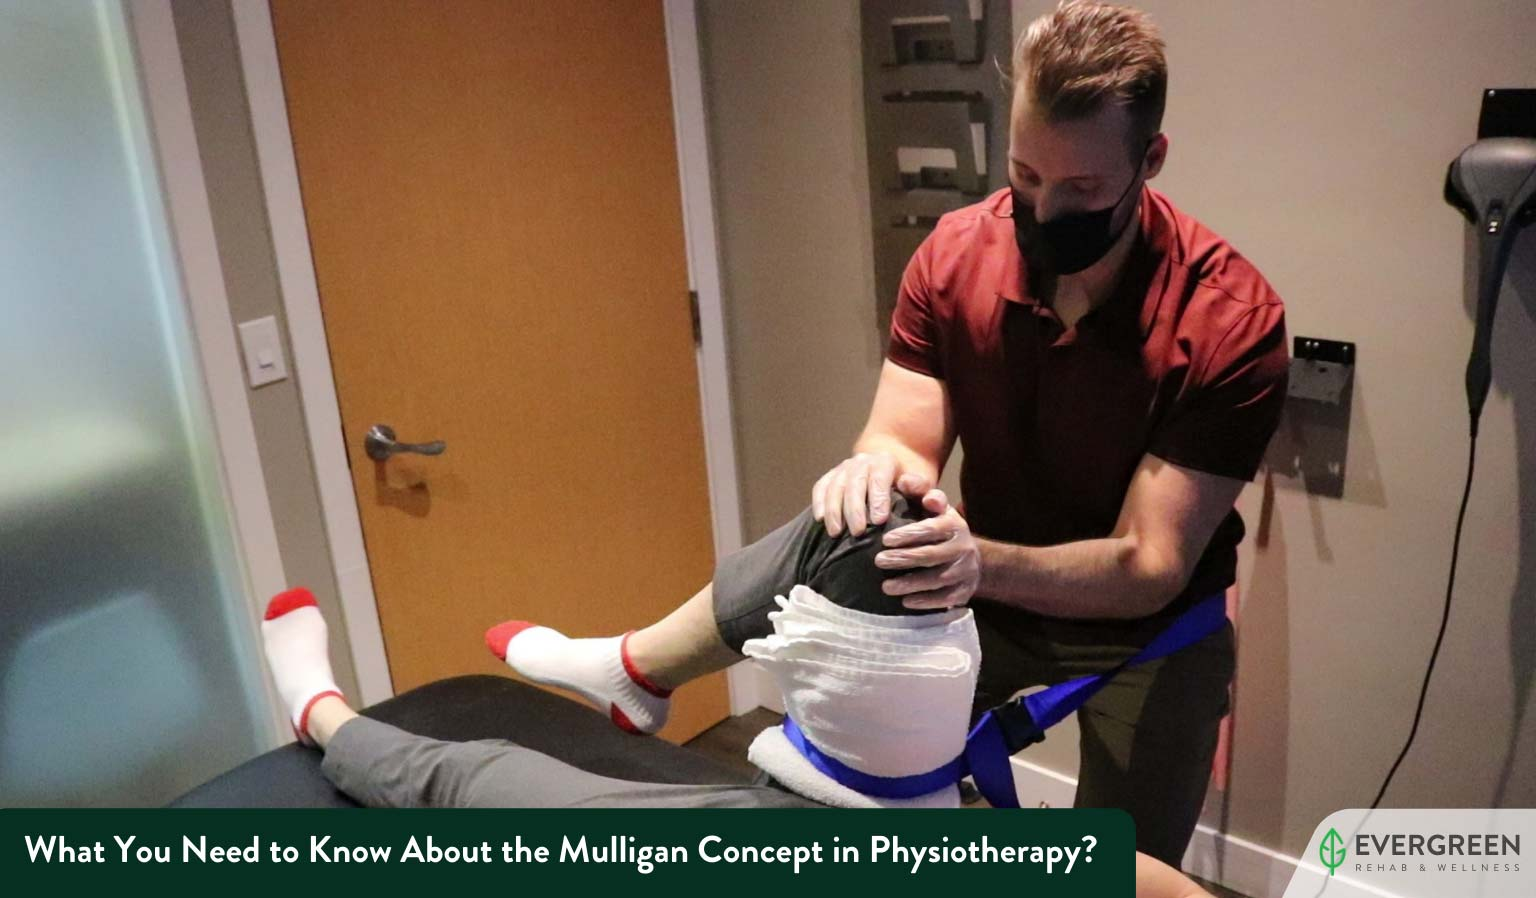 What You Need to Know About the Mulligan Concept in Physiotherapy?